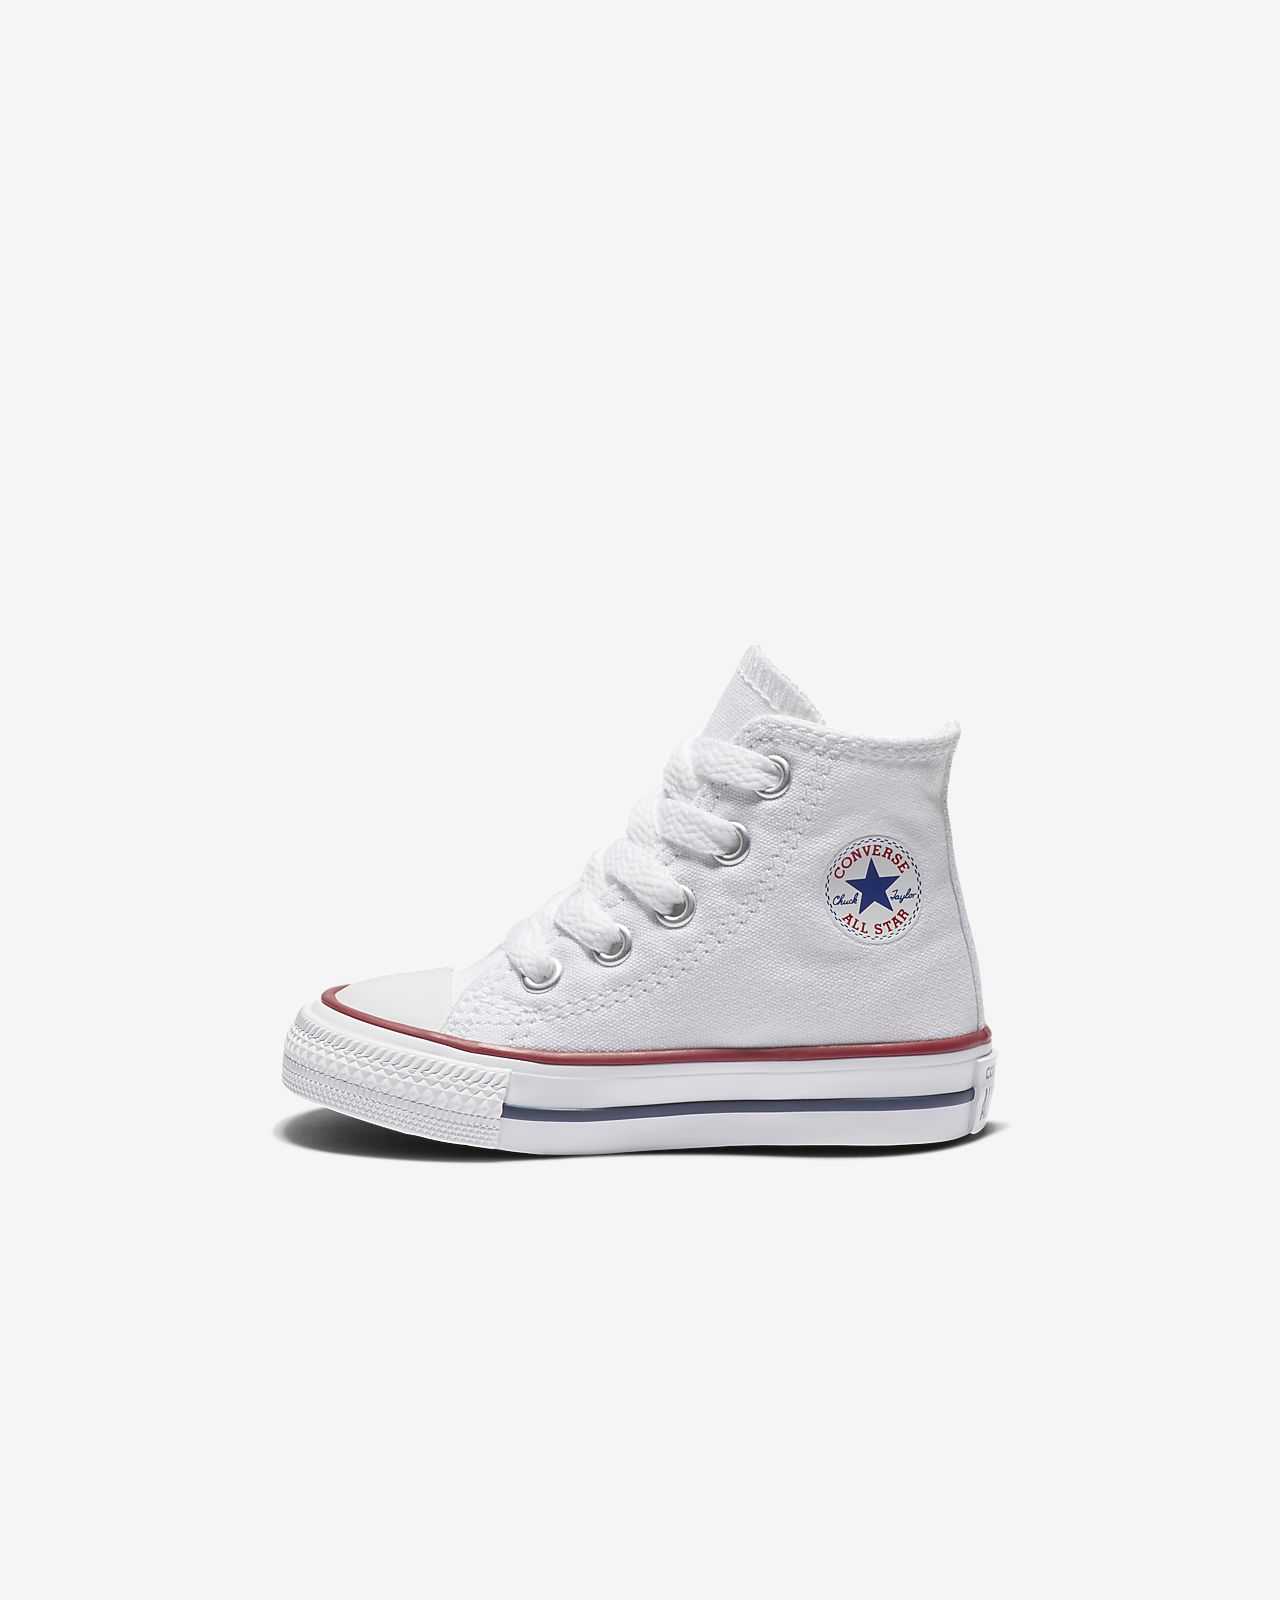 9f54b9826c53 Converse Chuck Taylor All Star High Top (2c-10c) Infant Toddler Shoe ...